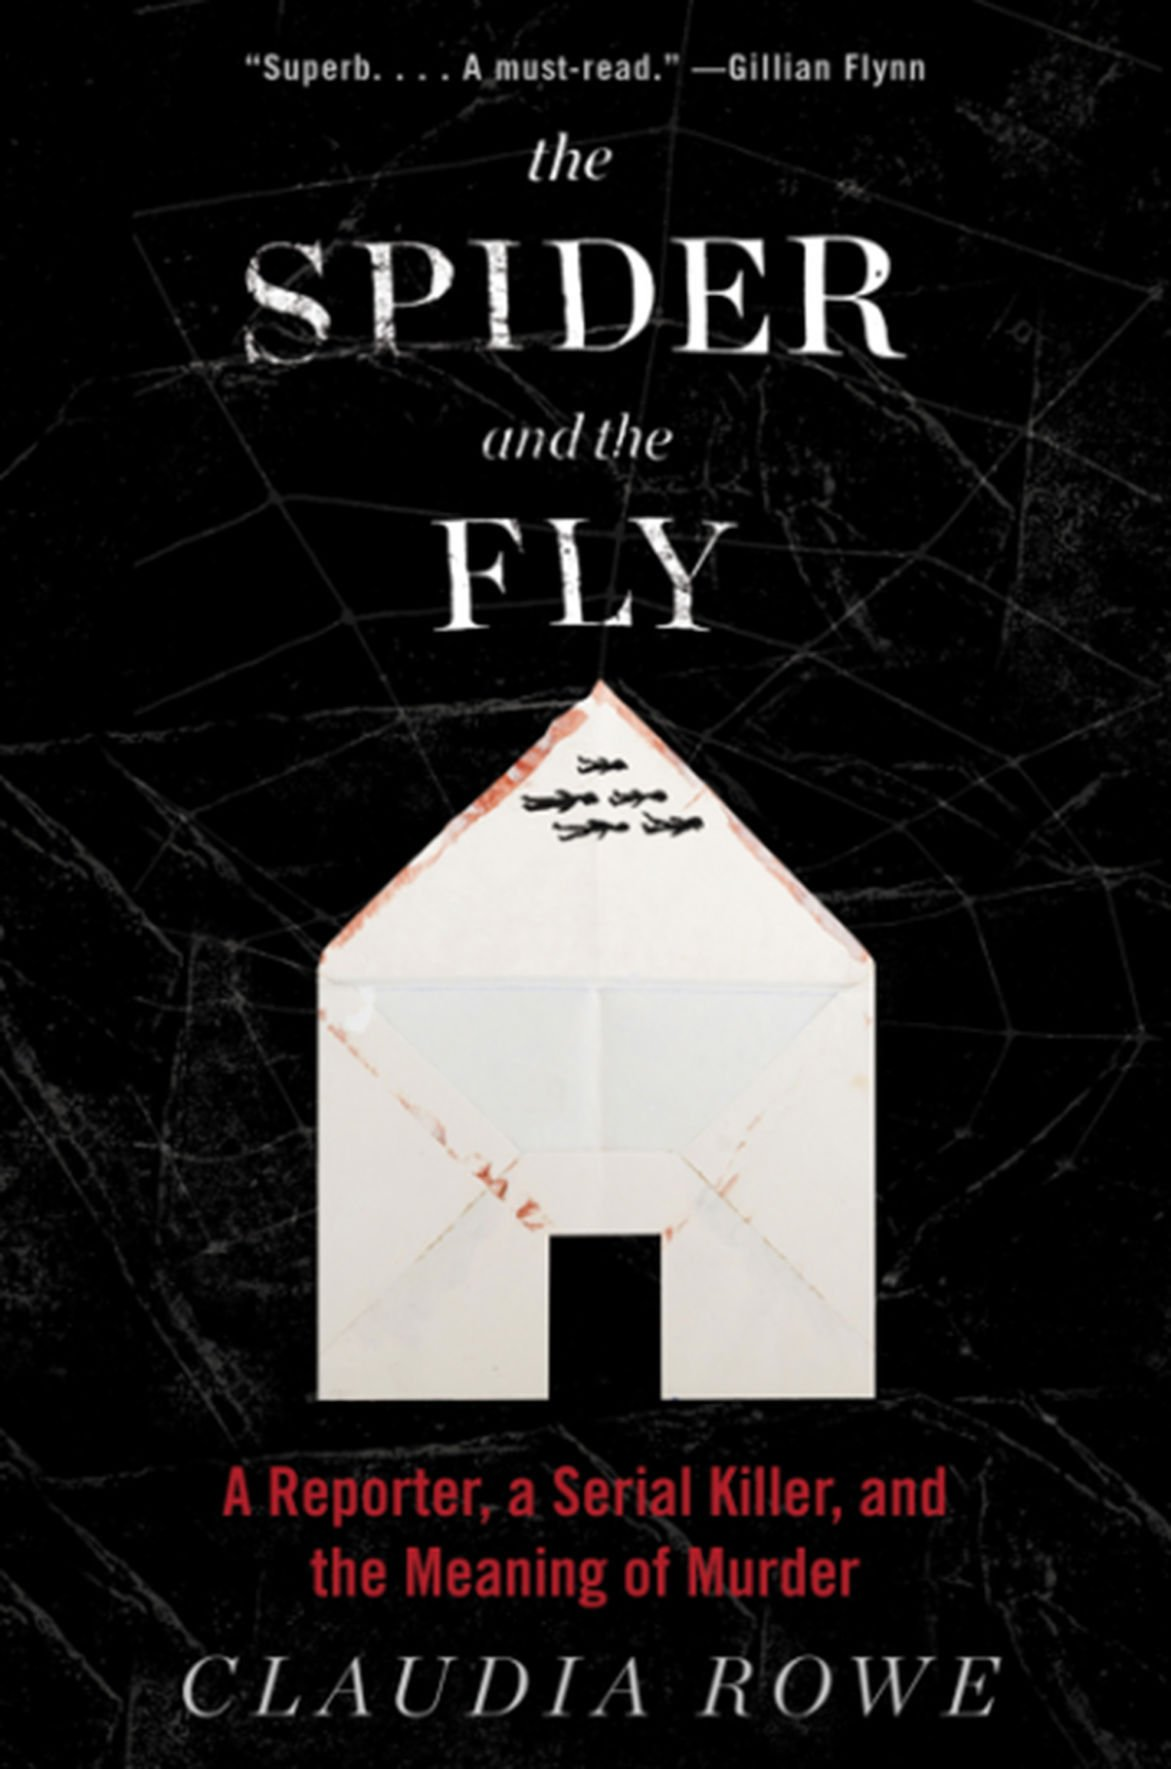 BOOKS BOOK-ROWE-SPIDER-FLY SE